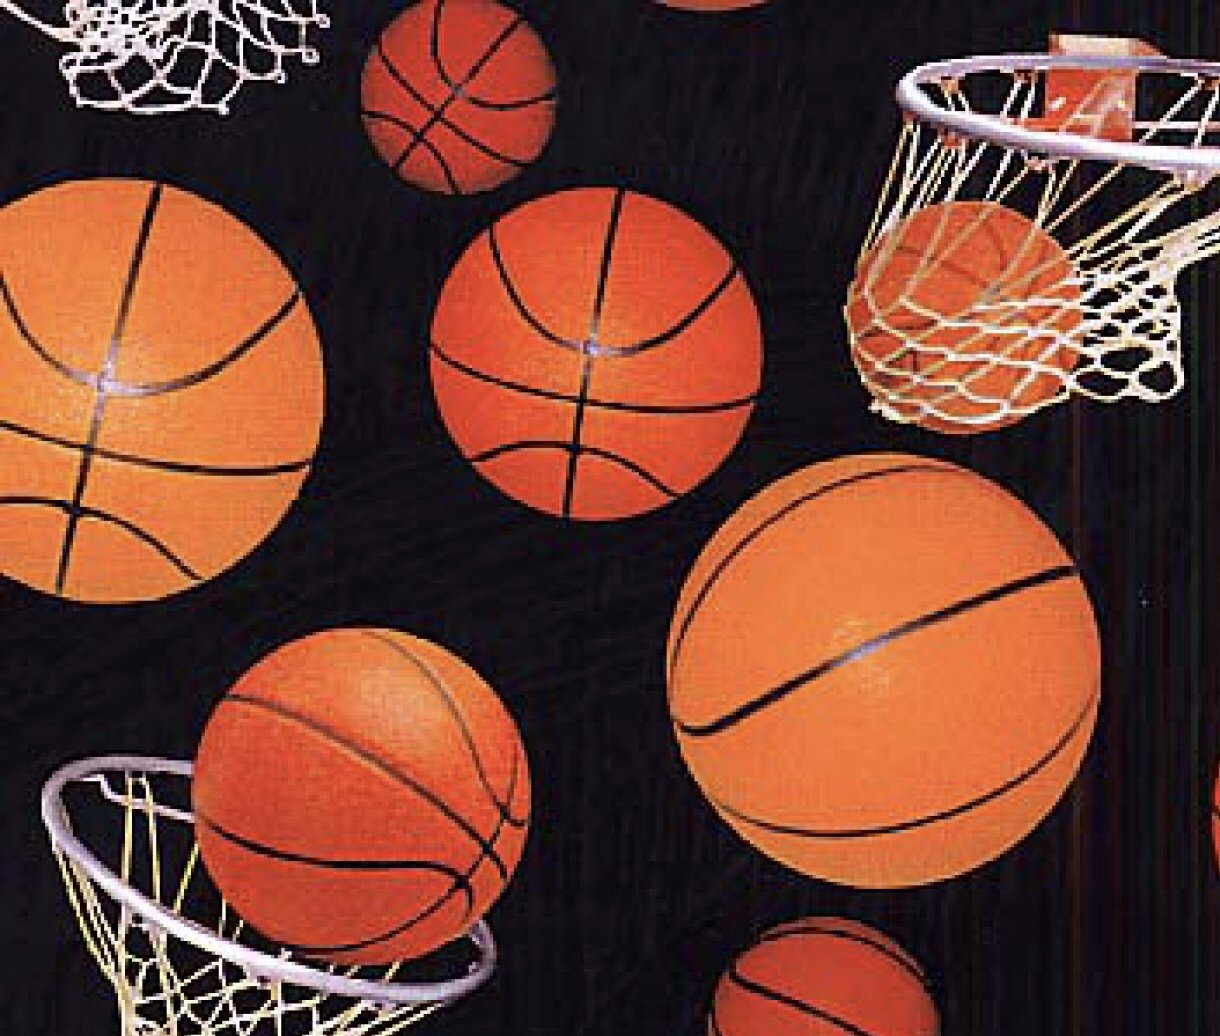 Basketballs with Nets